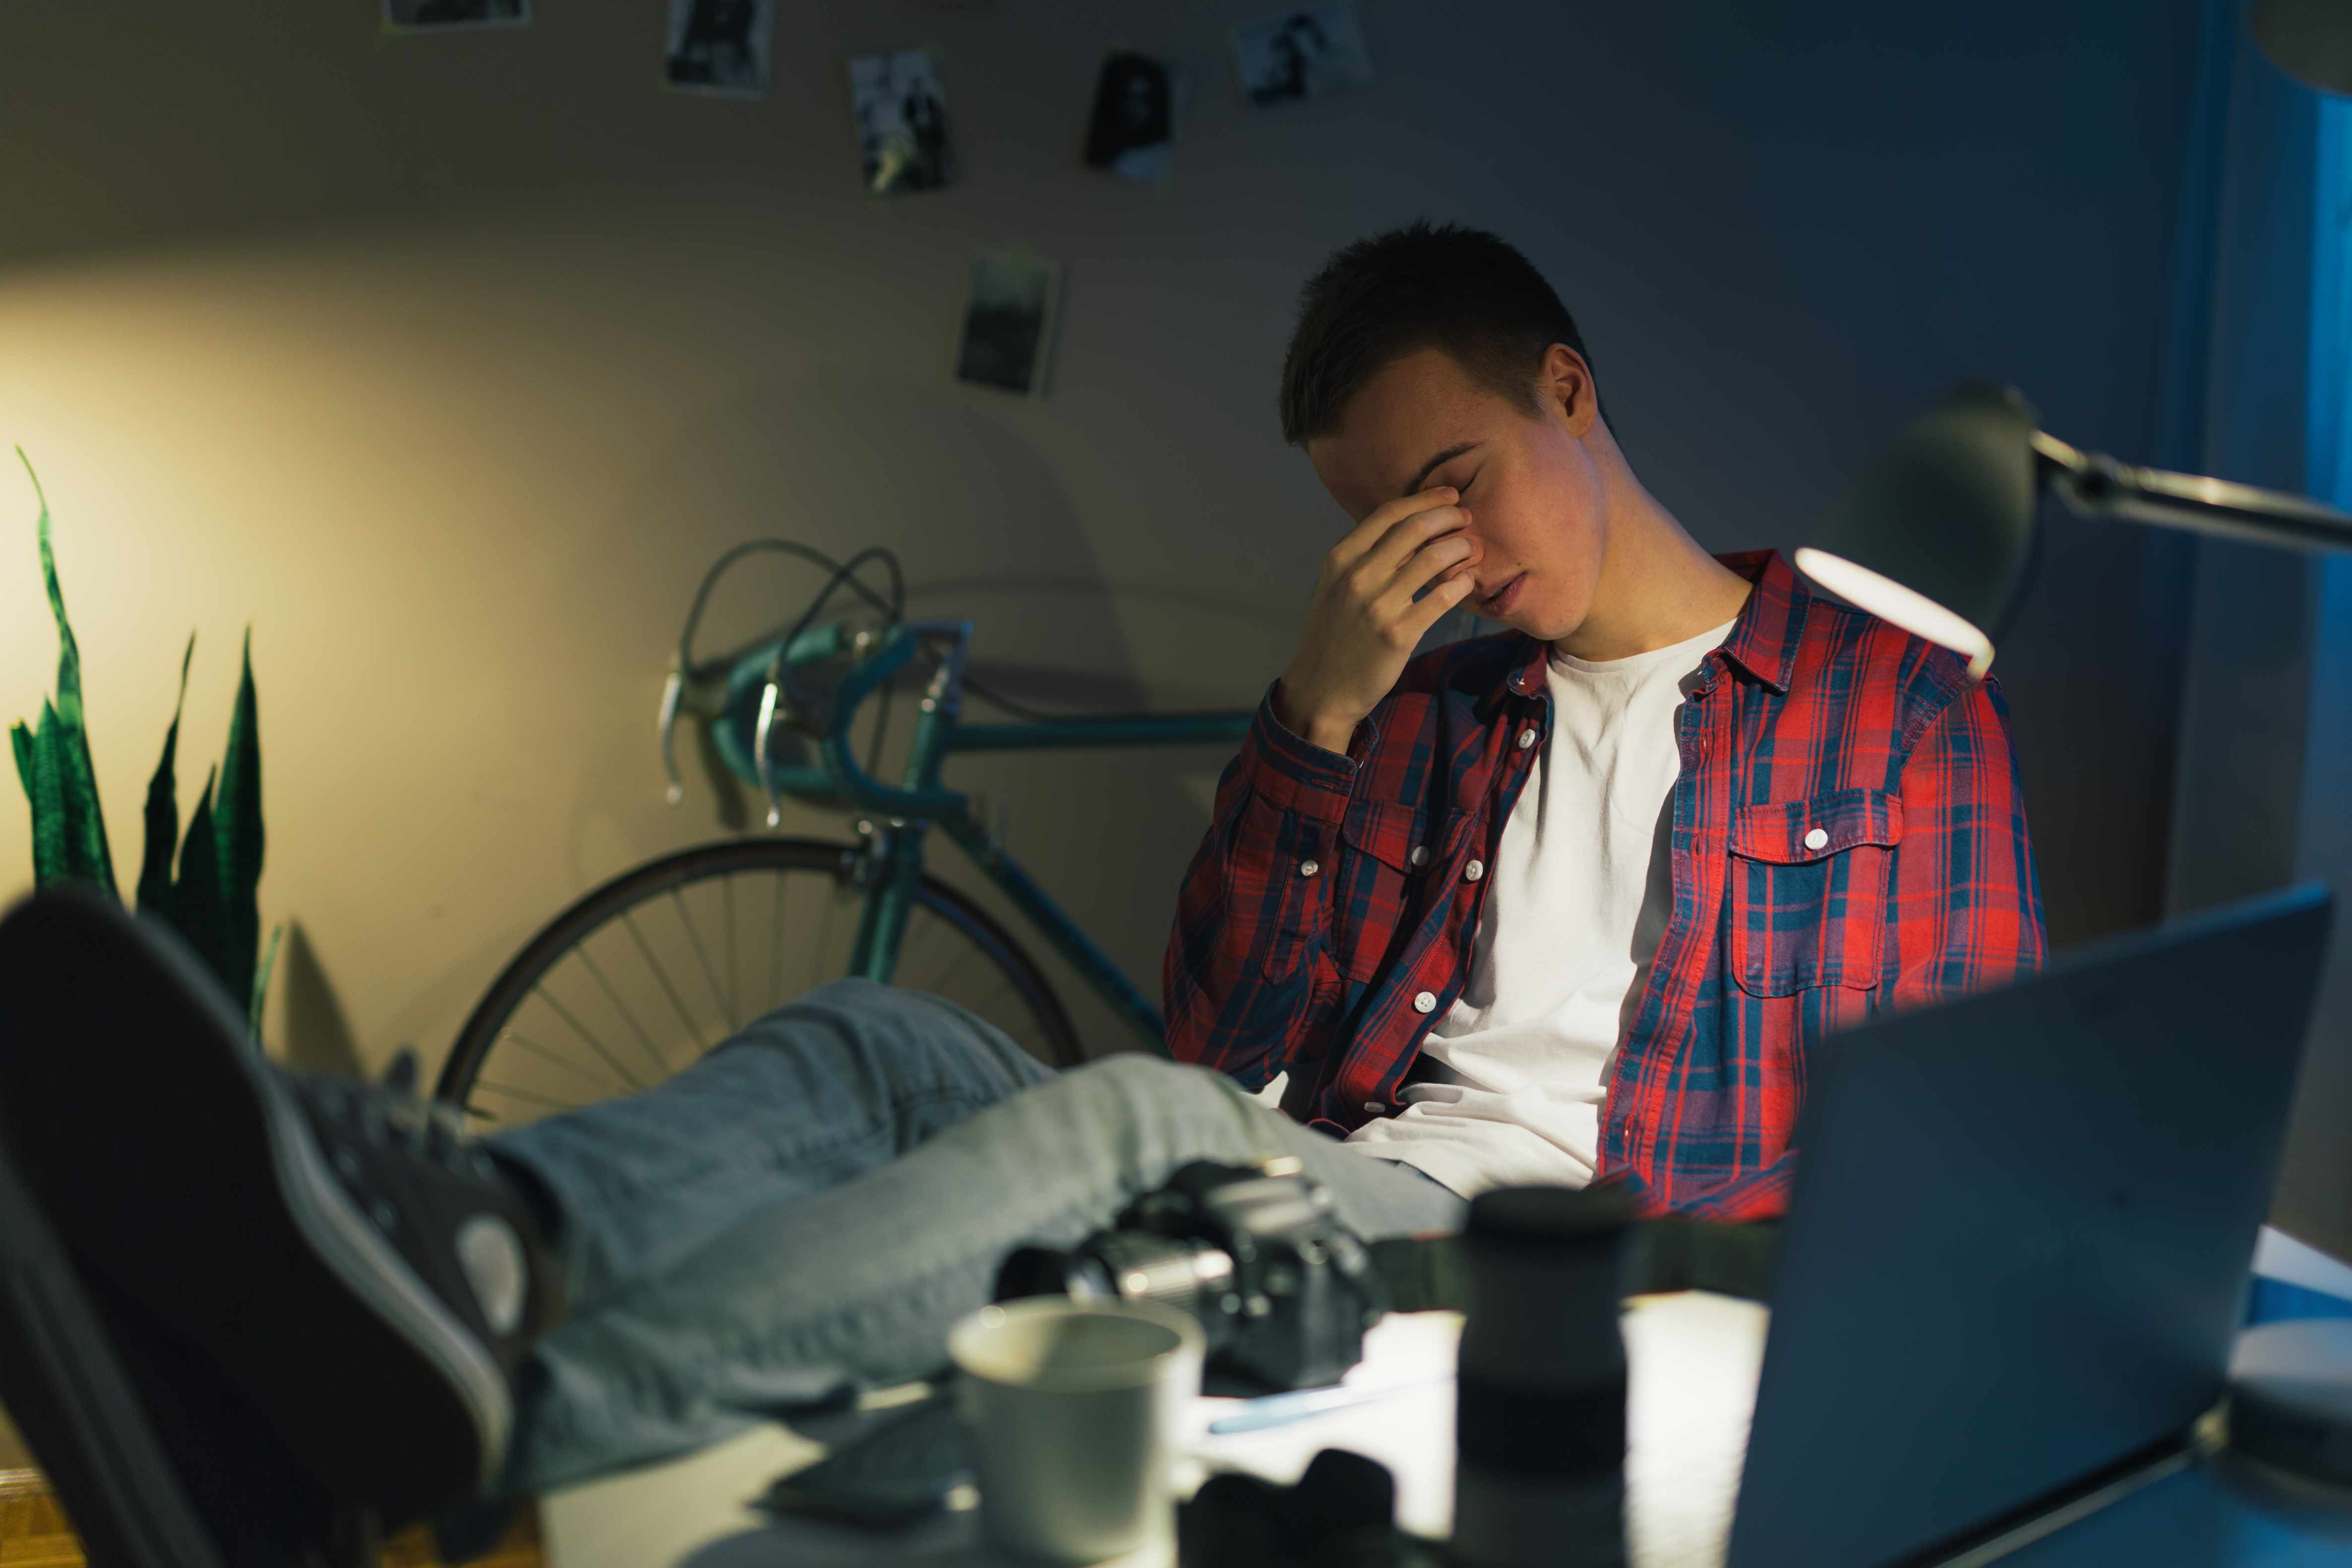 a young teen or college boy sitting at his computer rubbing his eyes tired and exhausted